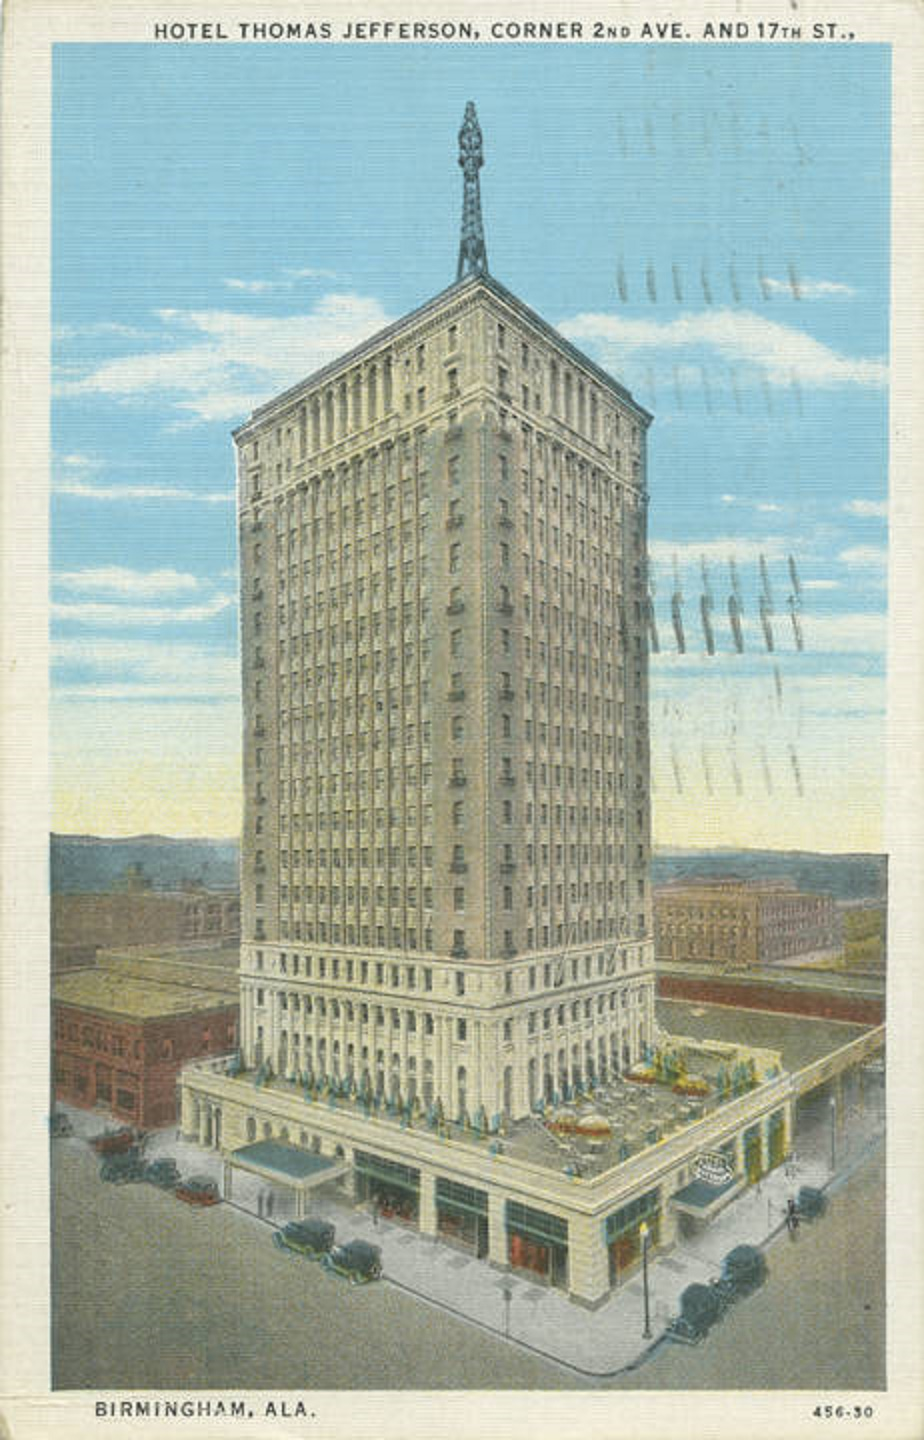 Hotel Thomas Jefferson 1937 (ADAH)